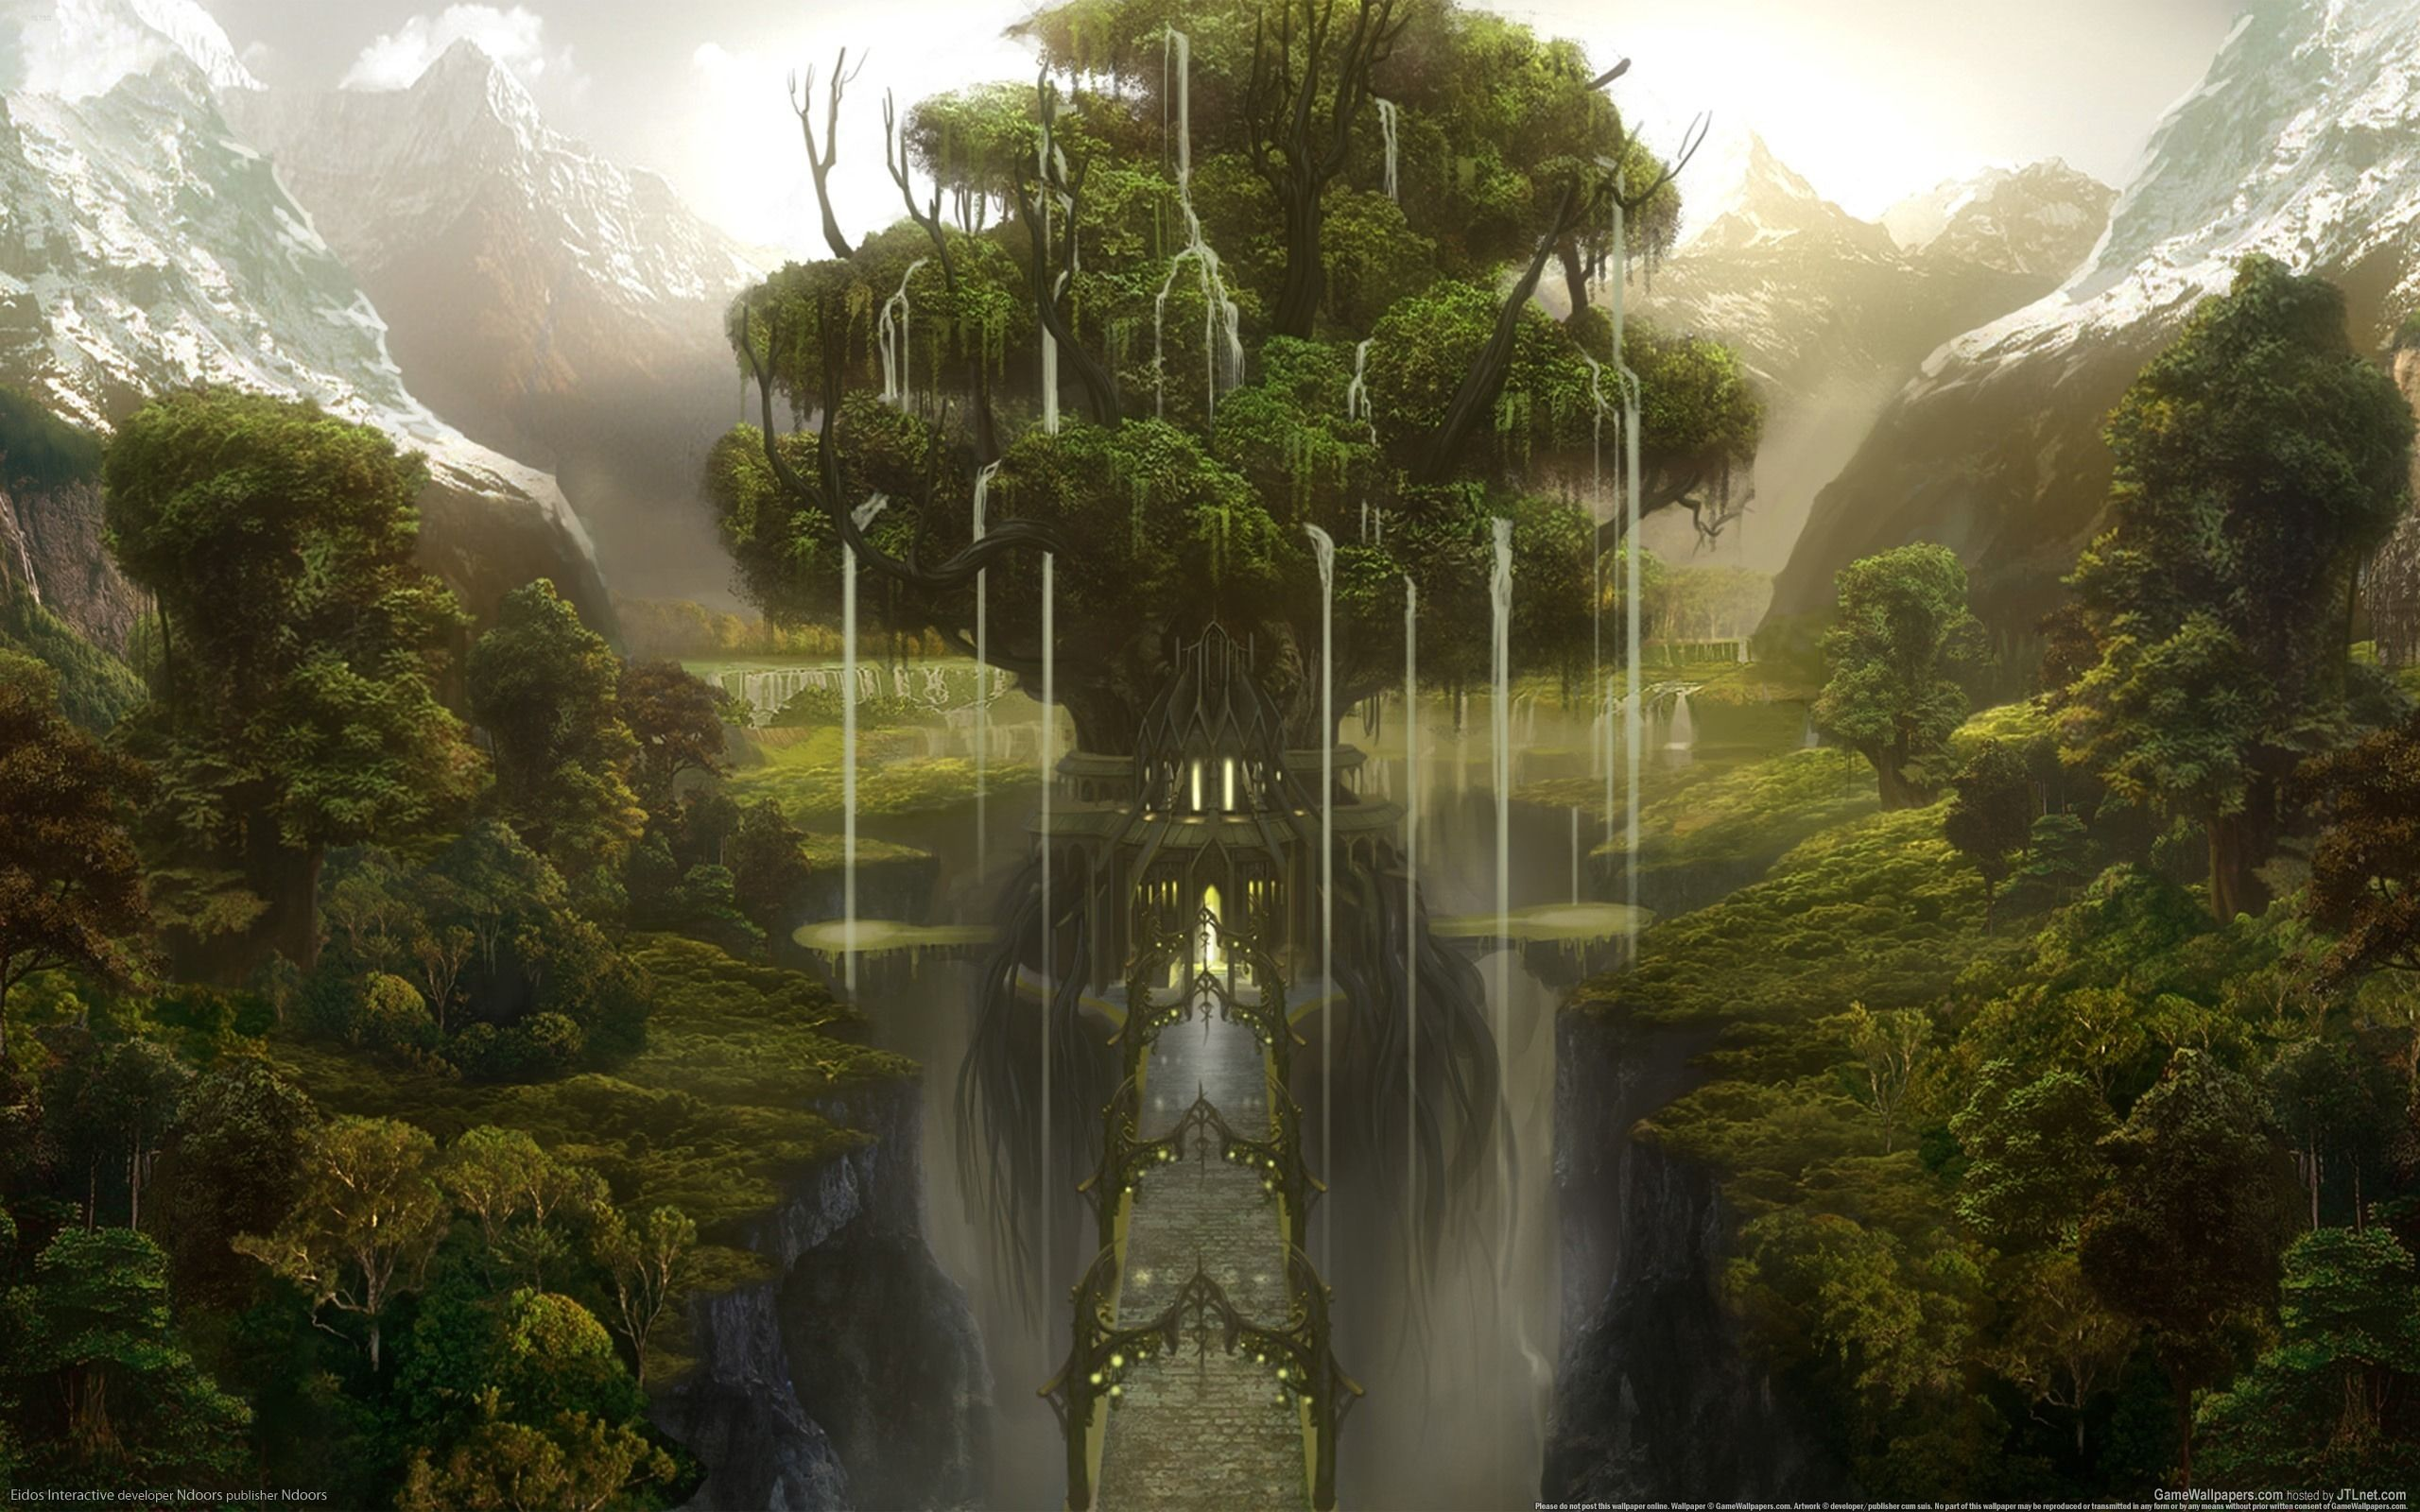 Httpo9icdnppittoox033258980ixdg trees of the httpo9icdnppittoox033258980ixdg trees of the day pinterest roleplay servers background images and medieval fantasy thecheapjerseys Gallery